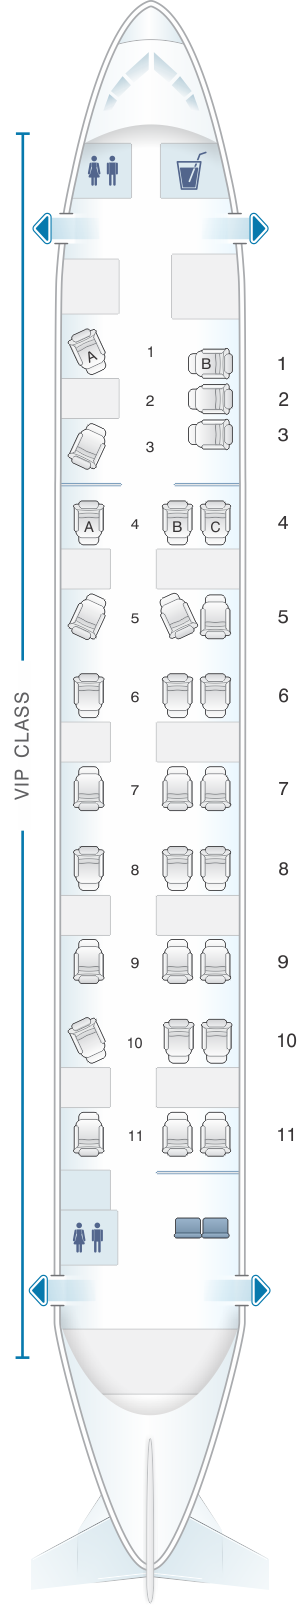 Seat map for White Airways Airbus A319 CS TLU day configuration